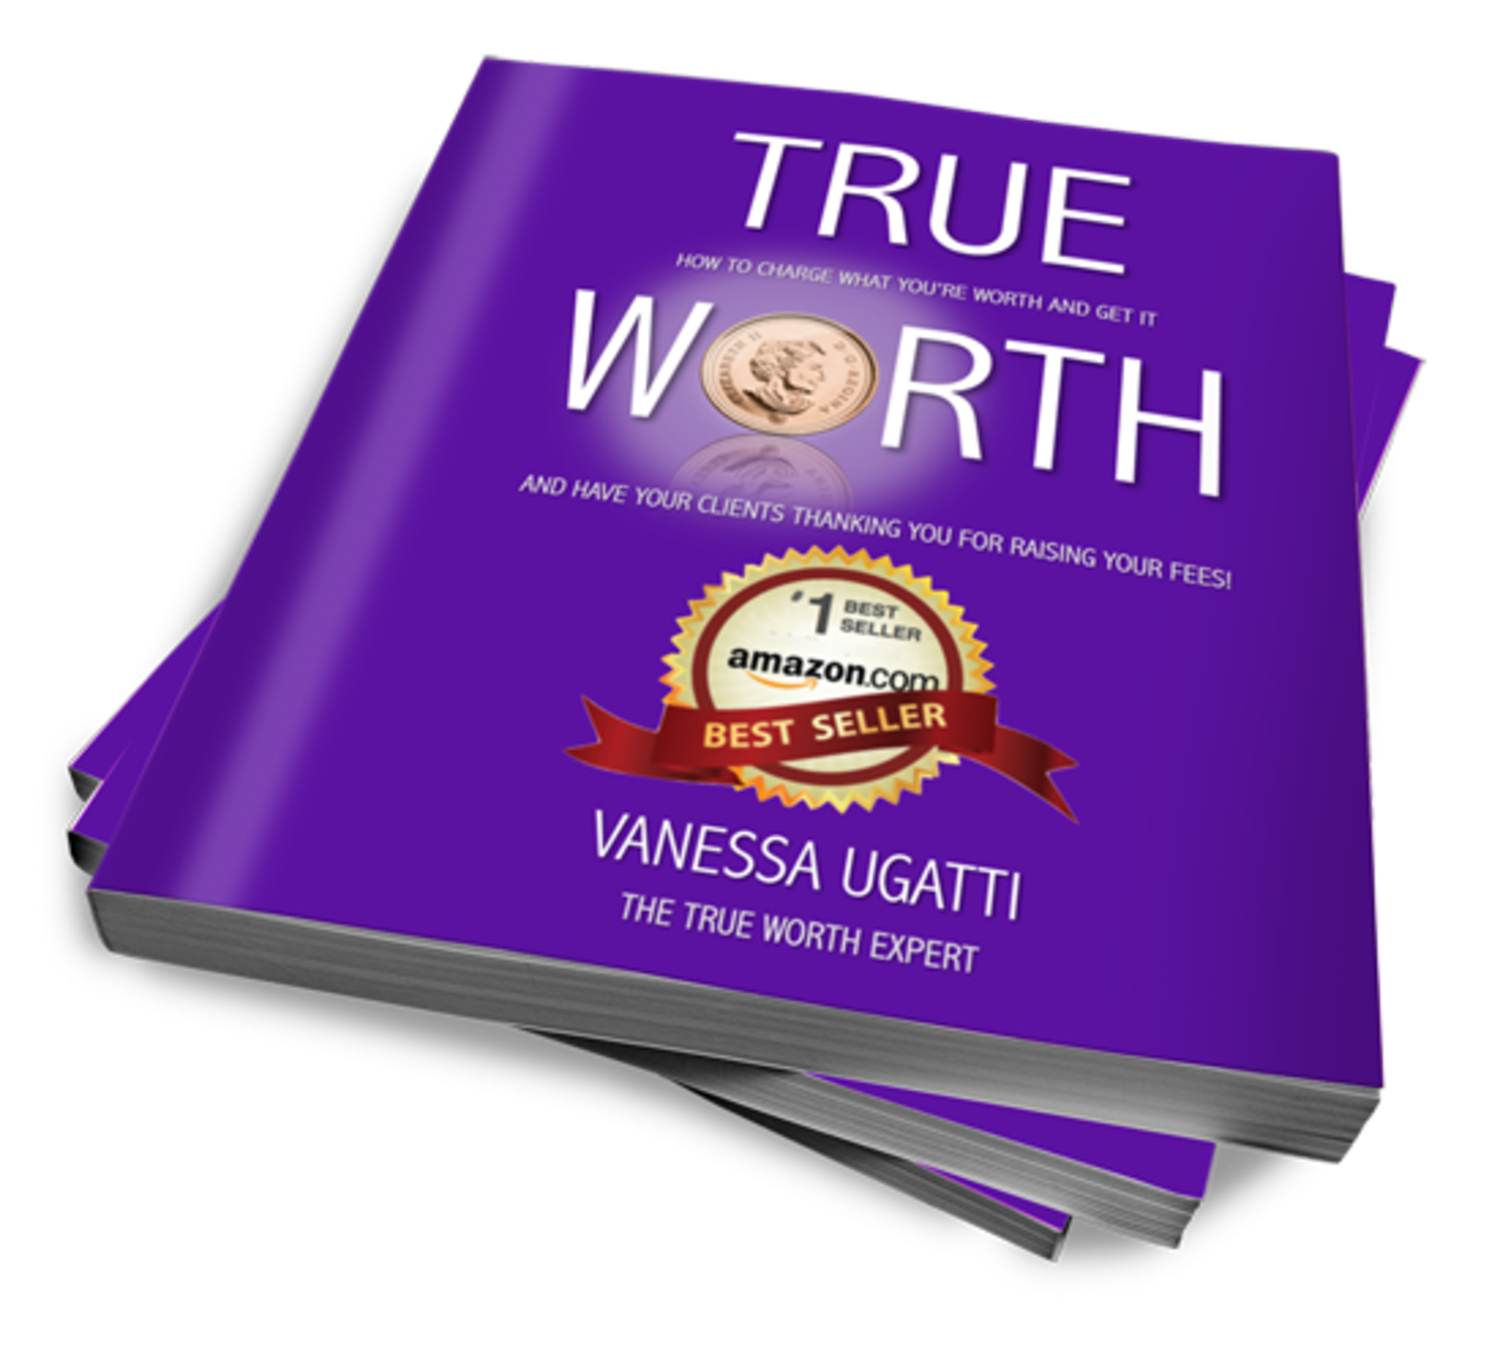 True Worth Expert - Vanessa Ugatti